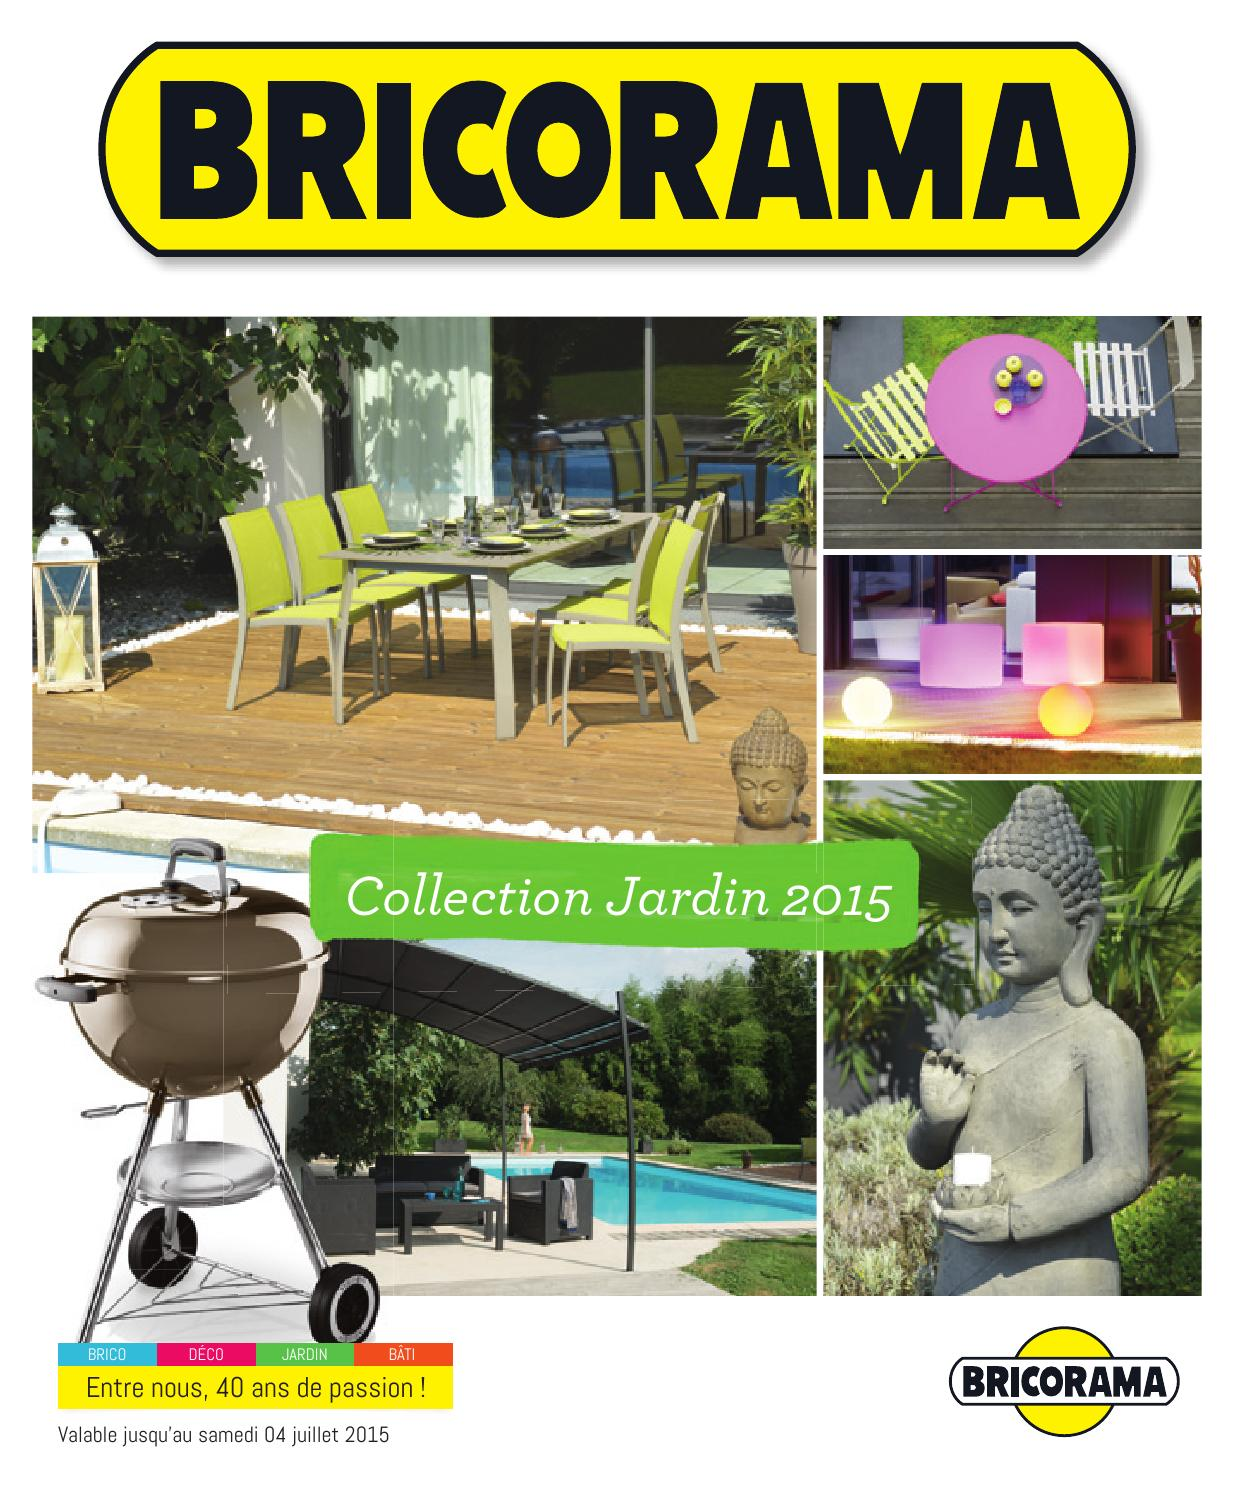 Bricorama catalogue 23mars 4juillet2015 by PromoCatalogues.com - issuu